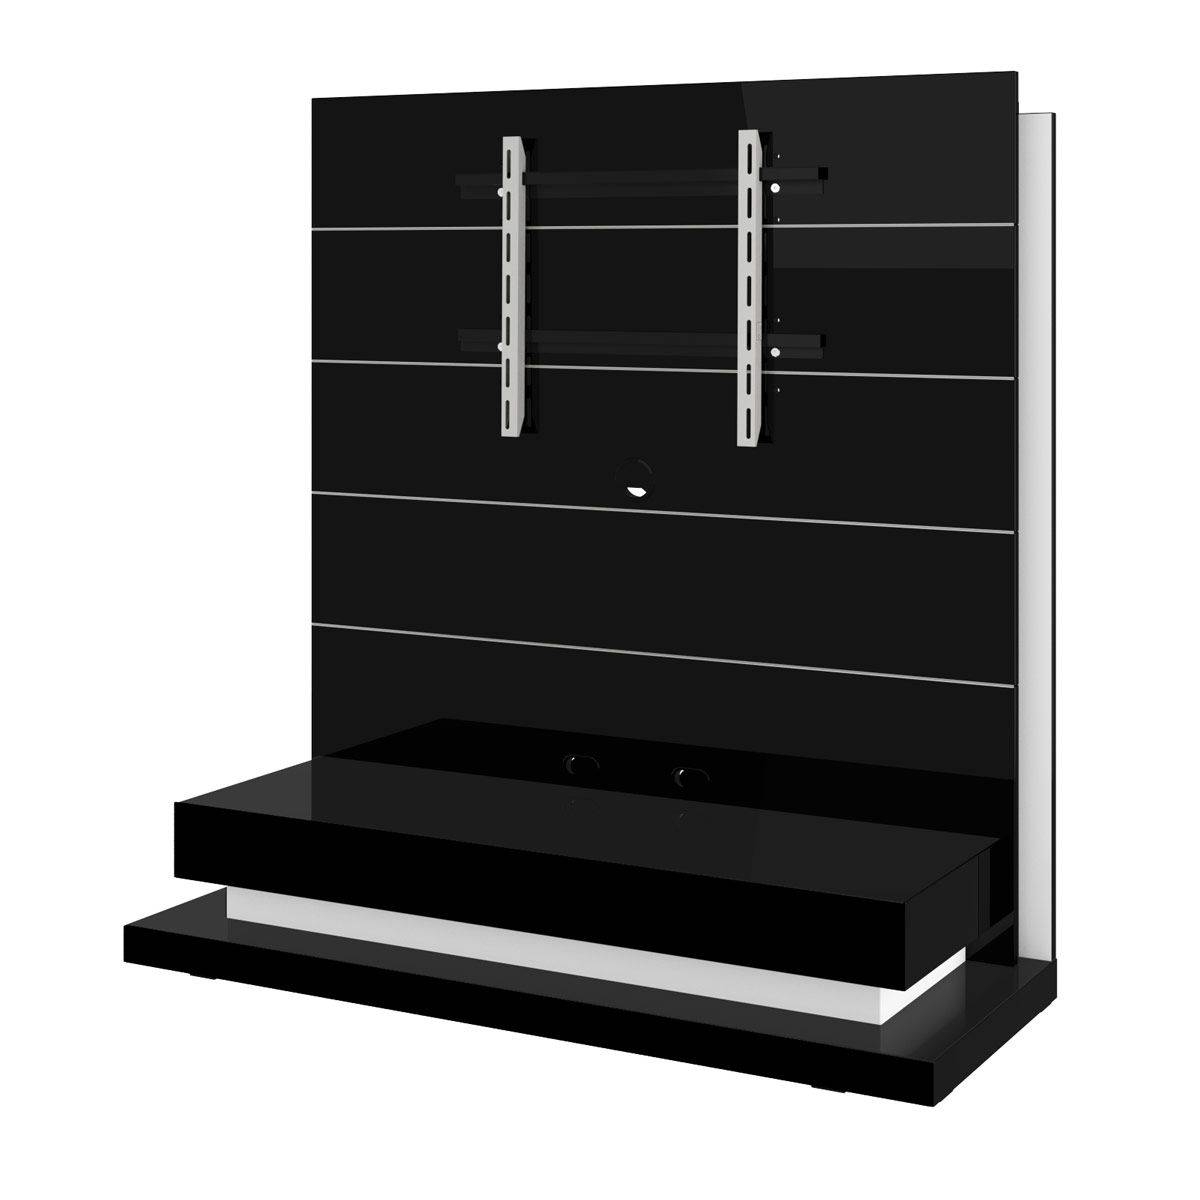 Standing Panorama Lux Black Tv Stand With Panorama Tv Stands (View 3 of 16)